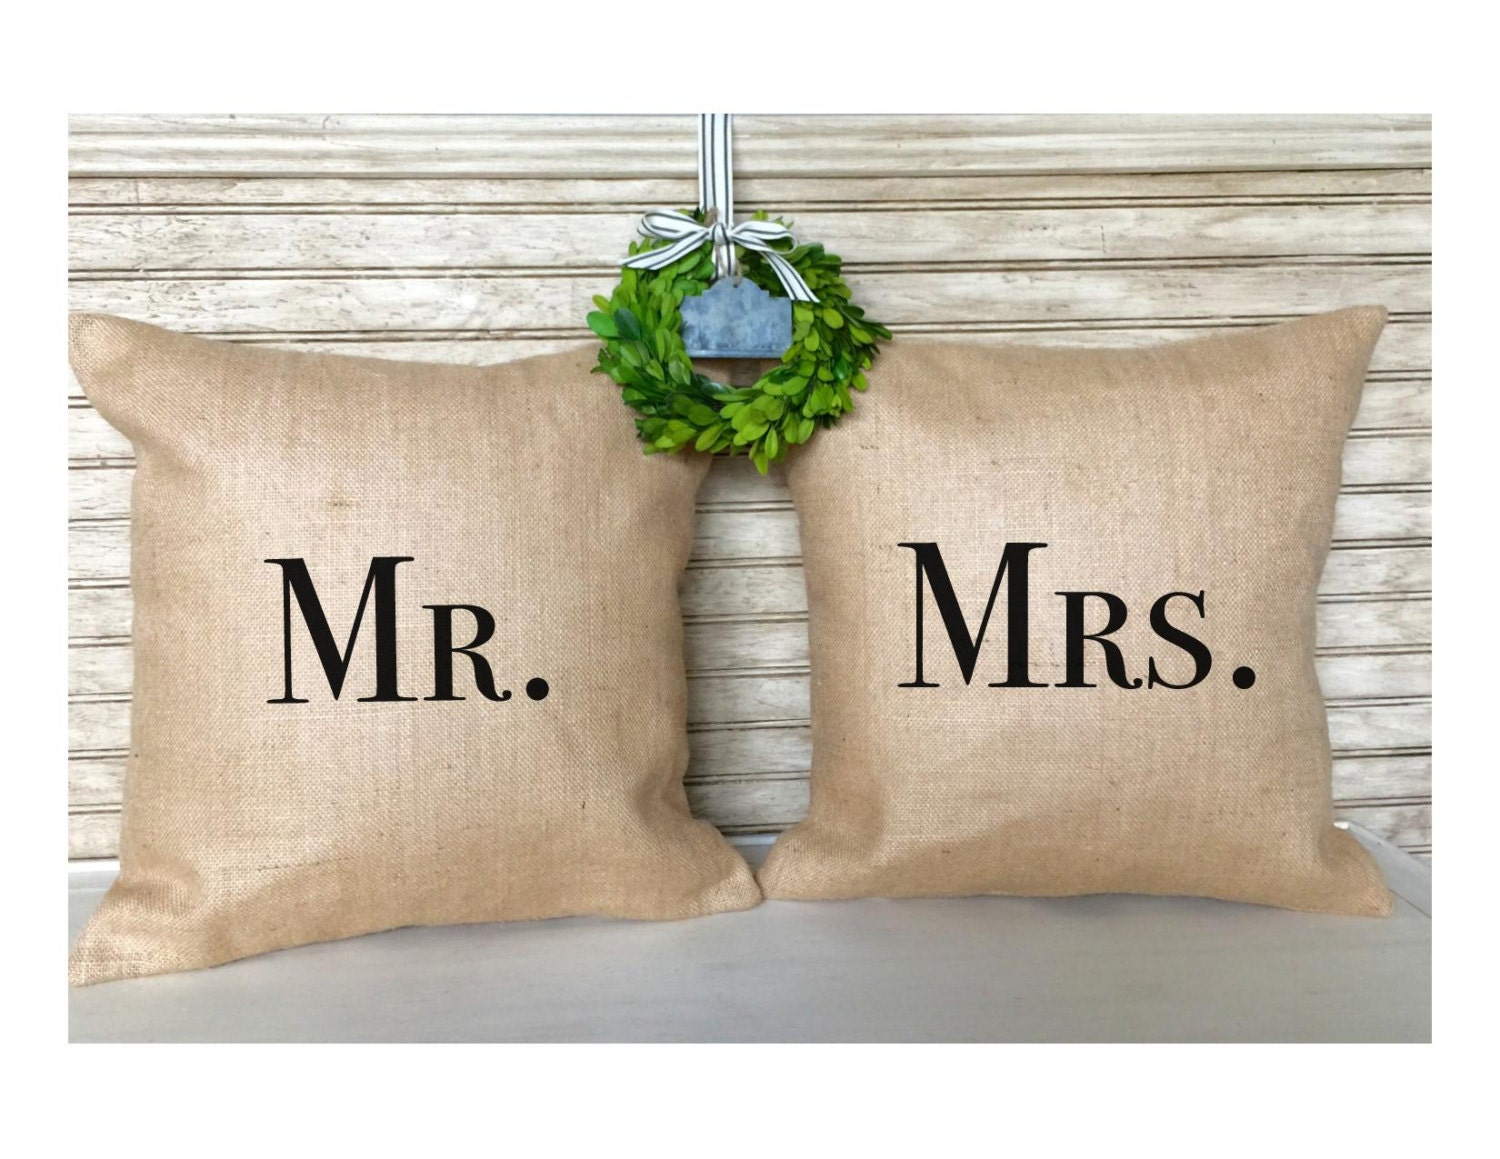 Mr Mrs Wedding Gifts: Rustic Wedding Gifts Couple Gifts Burlap Pillows Mr. And